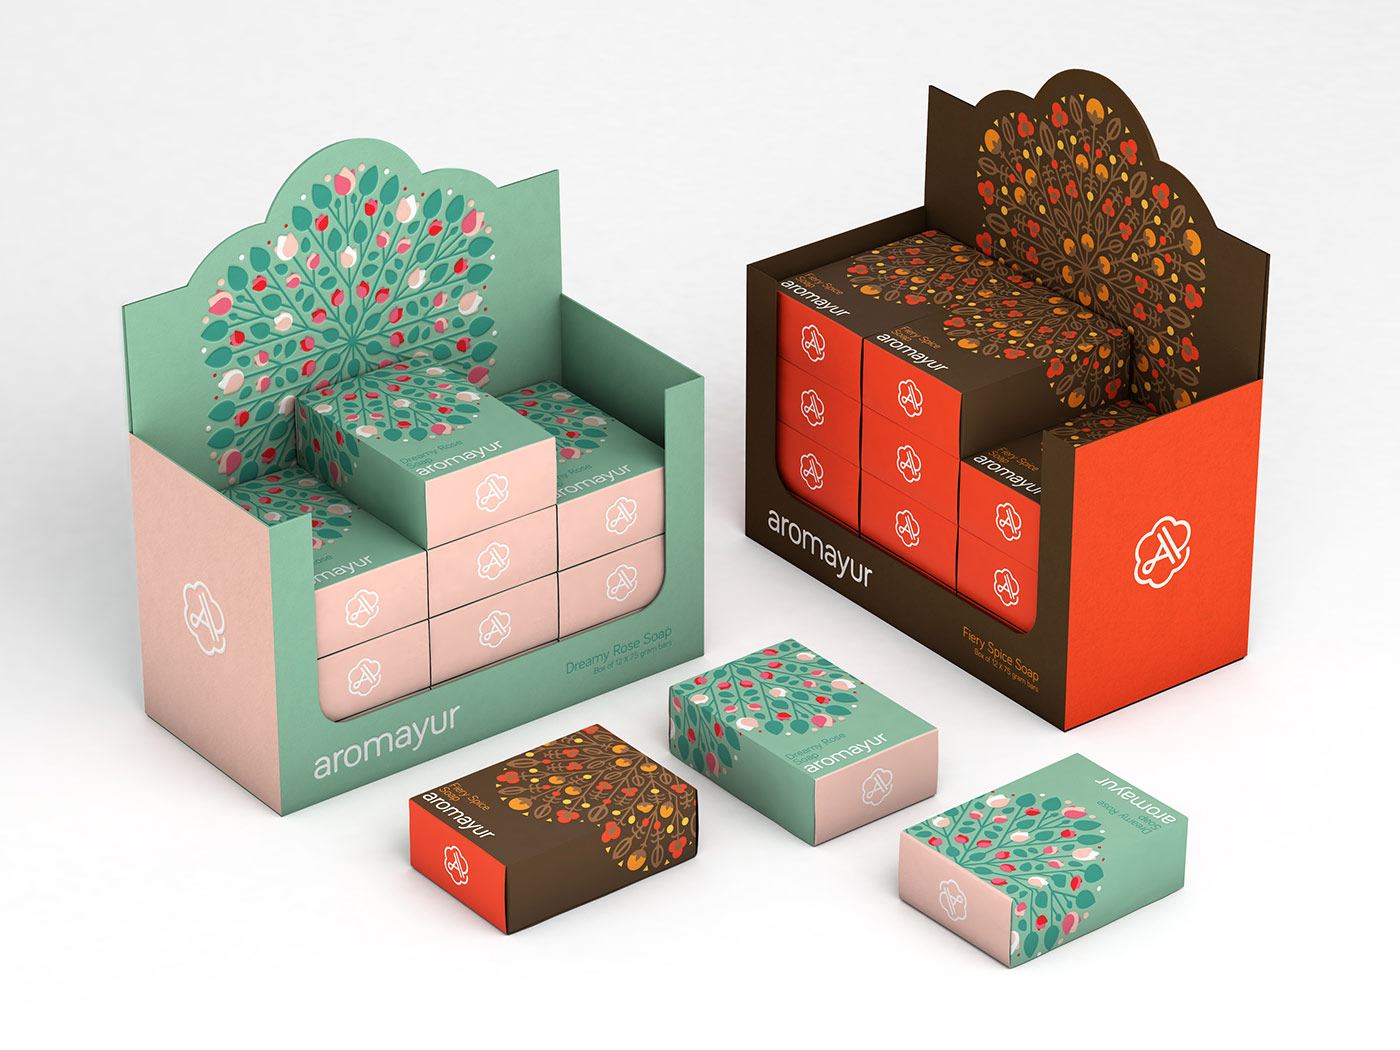 A Premium, Natural and Vibrant Brand - Identity & Packaging Design by Zooscope 4